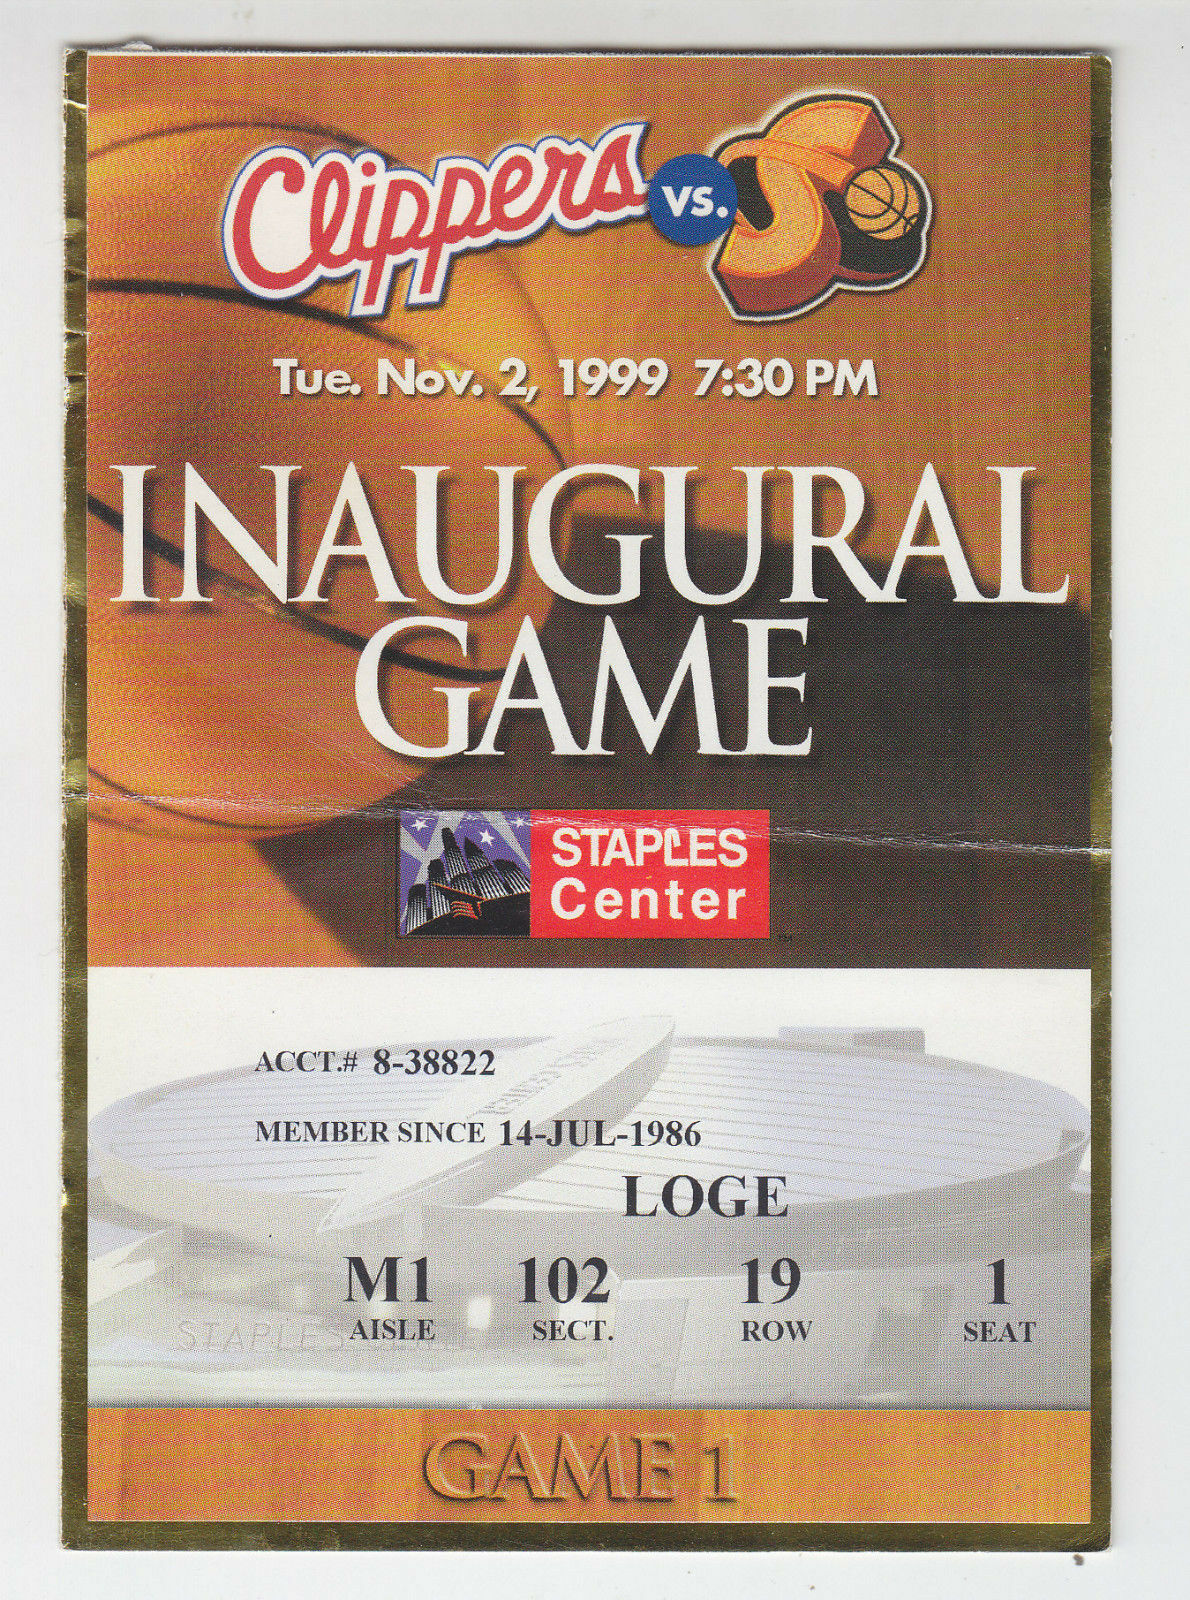 1999-00 los Angeles Clippers First Juego @ Grapas Centro Ticket Stub Supersonics